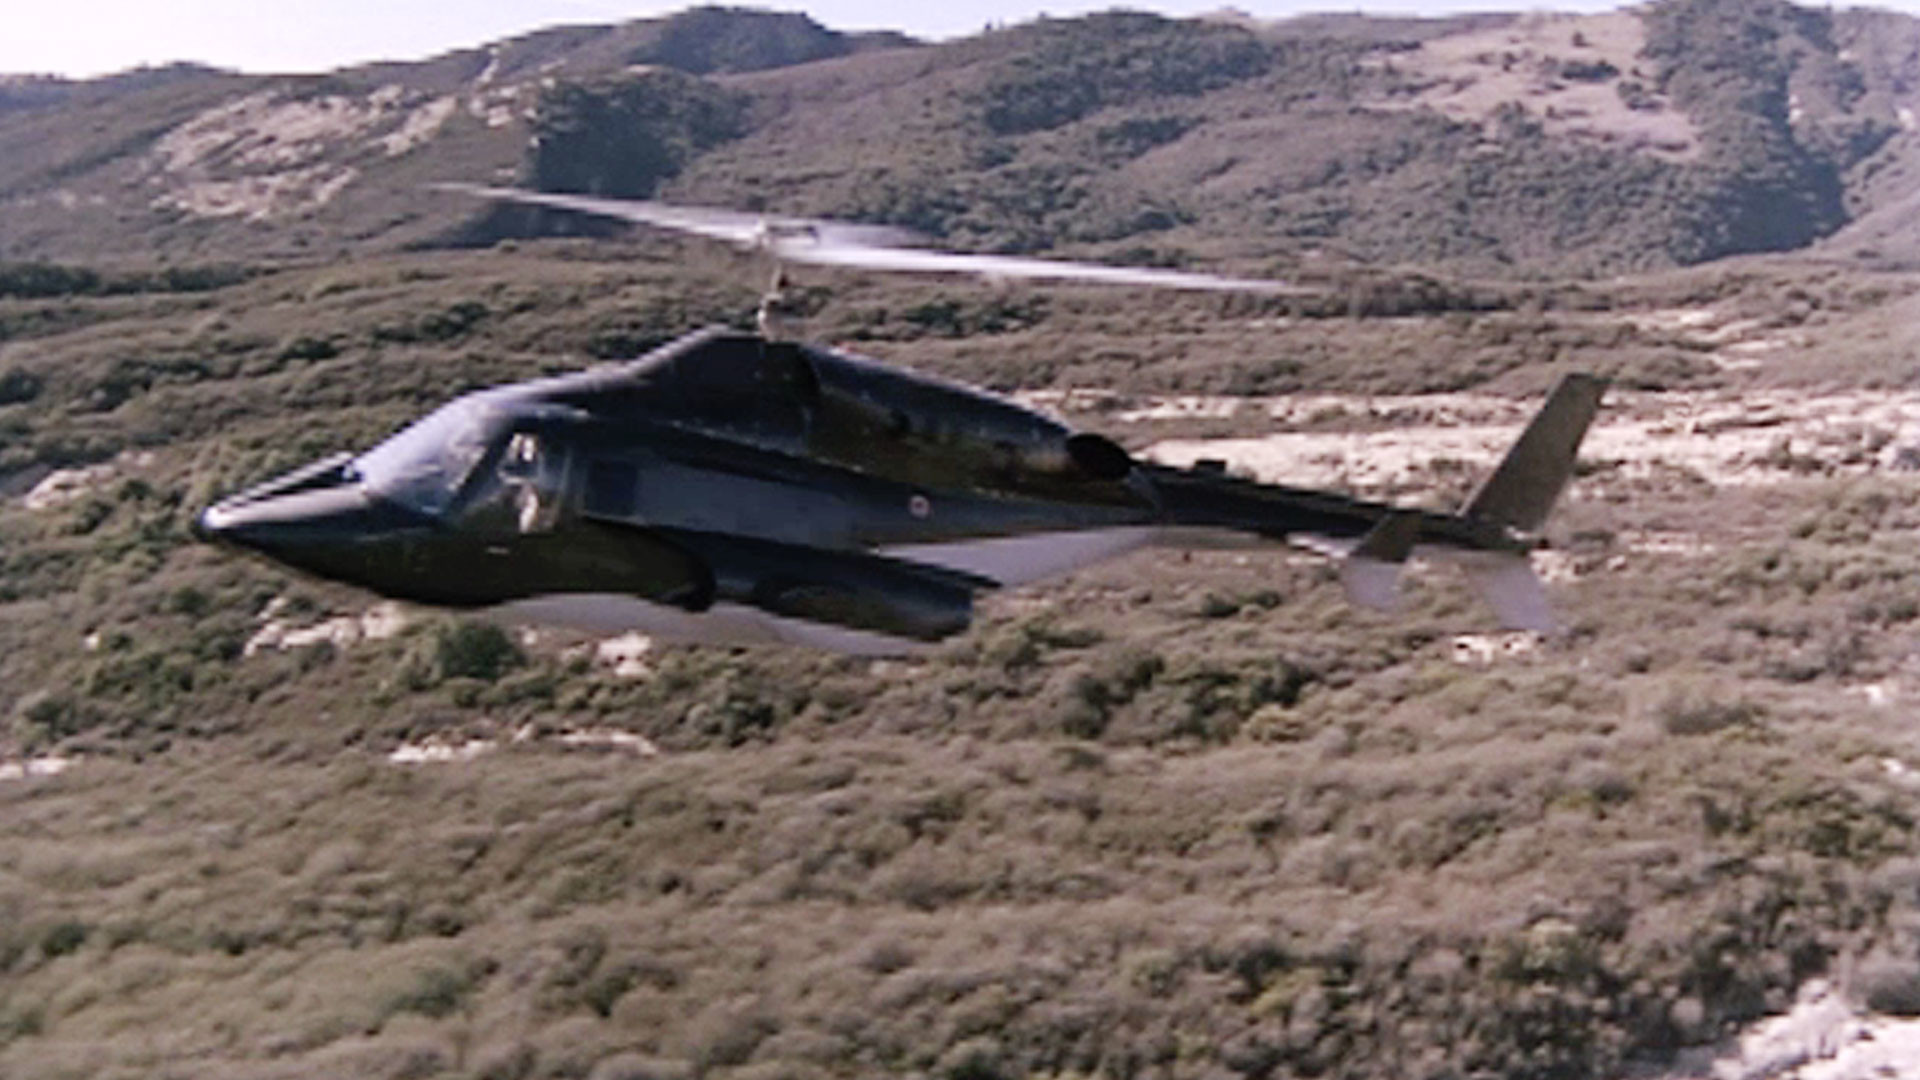 Helicopter Full Hd Wallpaper Airwolf Wallpapers 77 Images